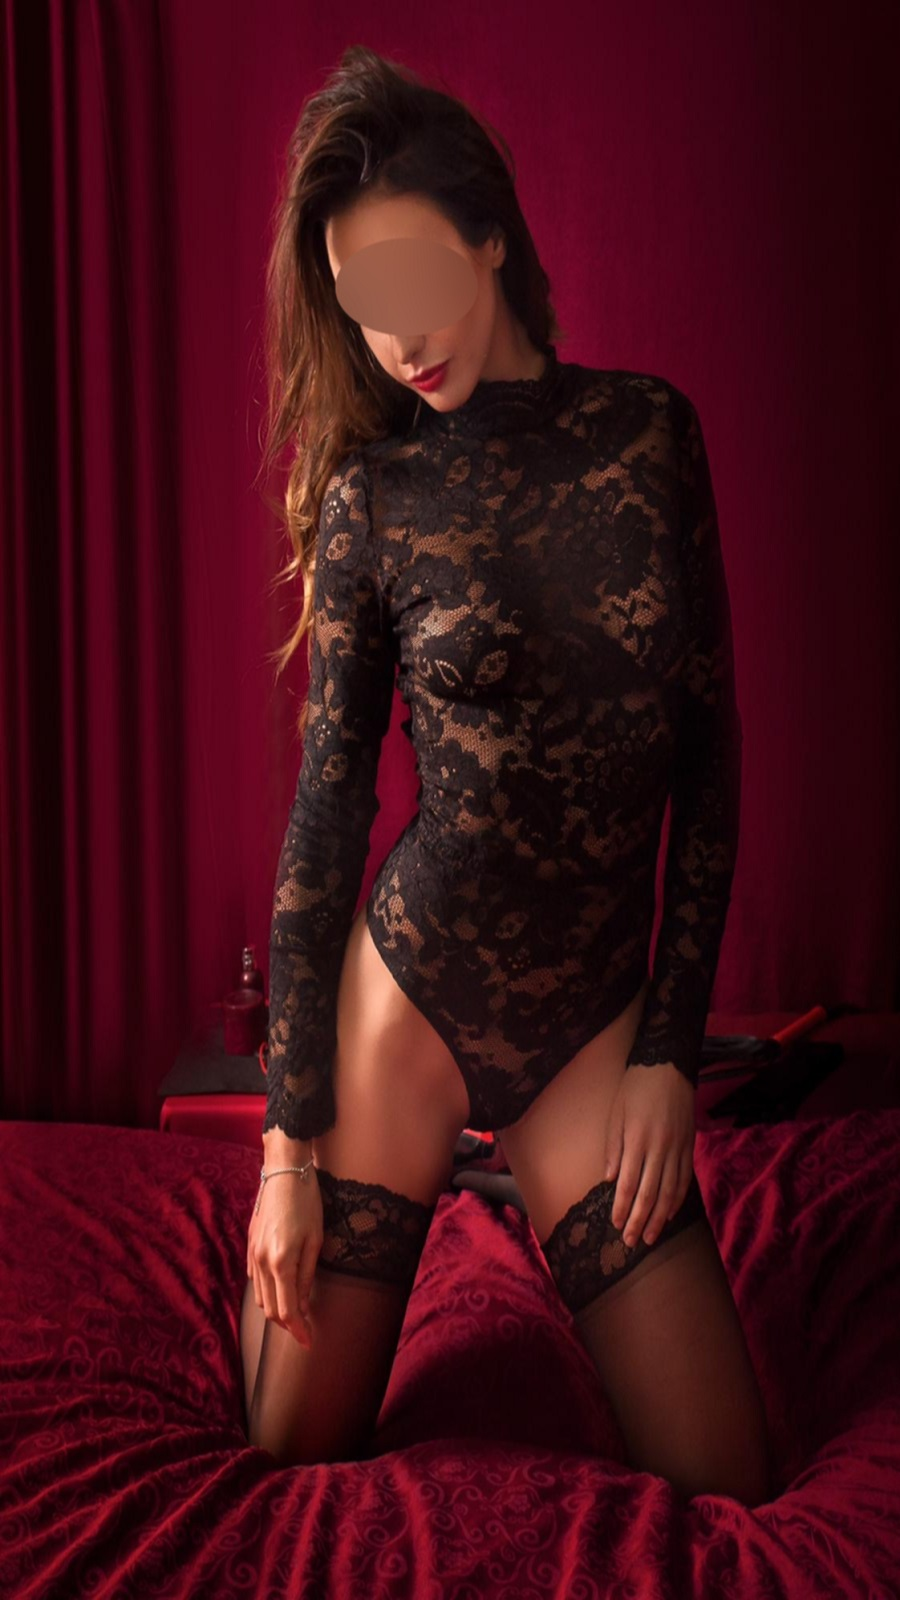 If you are looking for the perfect companion tonight give us a call on 07402724742 to book Khloe for the best night of your life.